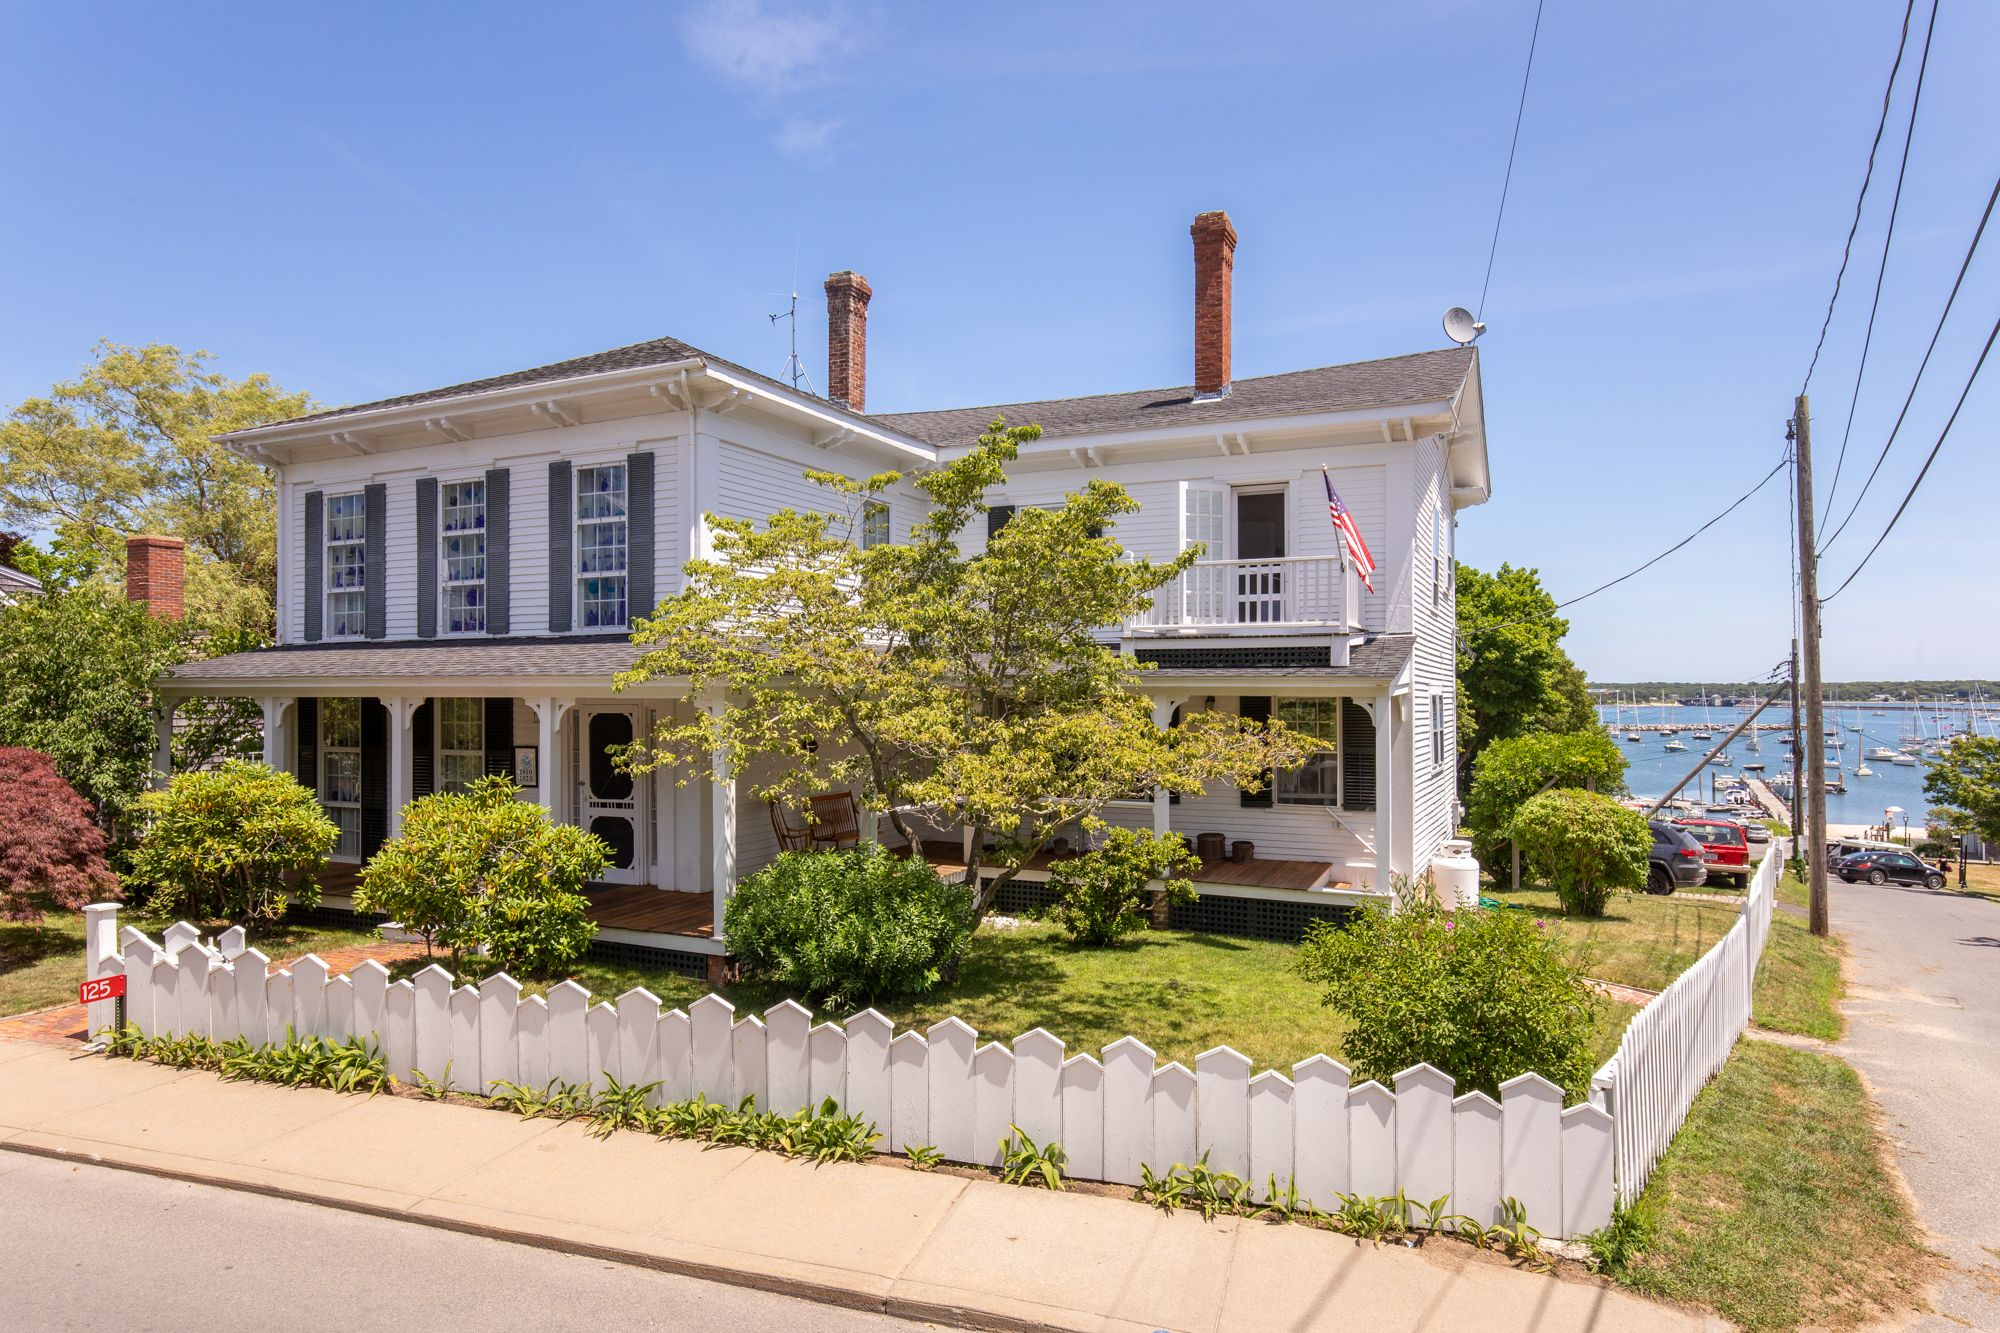 125 Main Street Vineyard Haven Photo